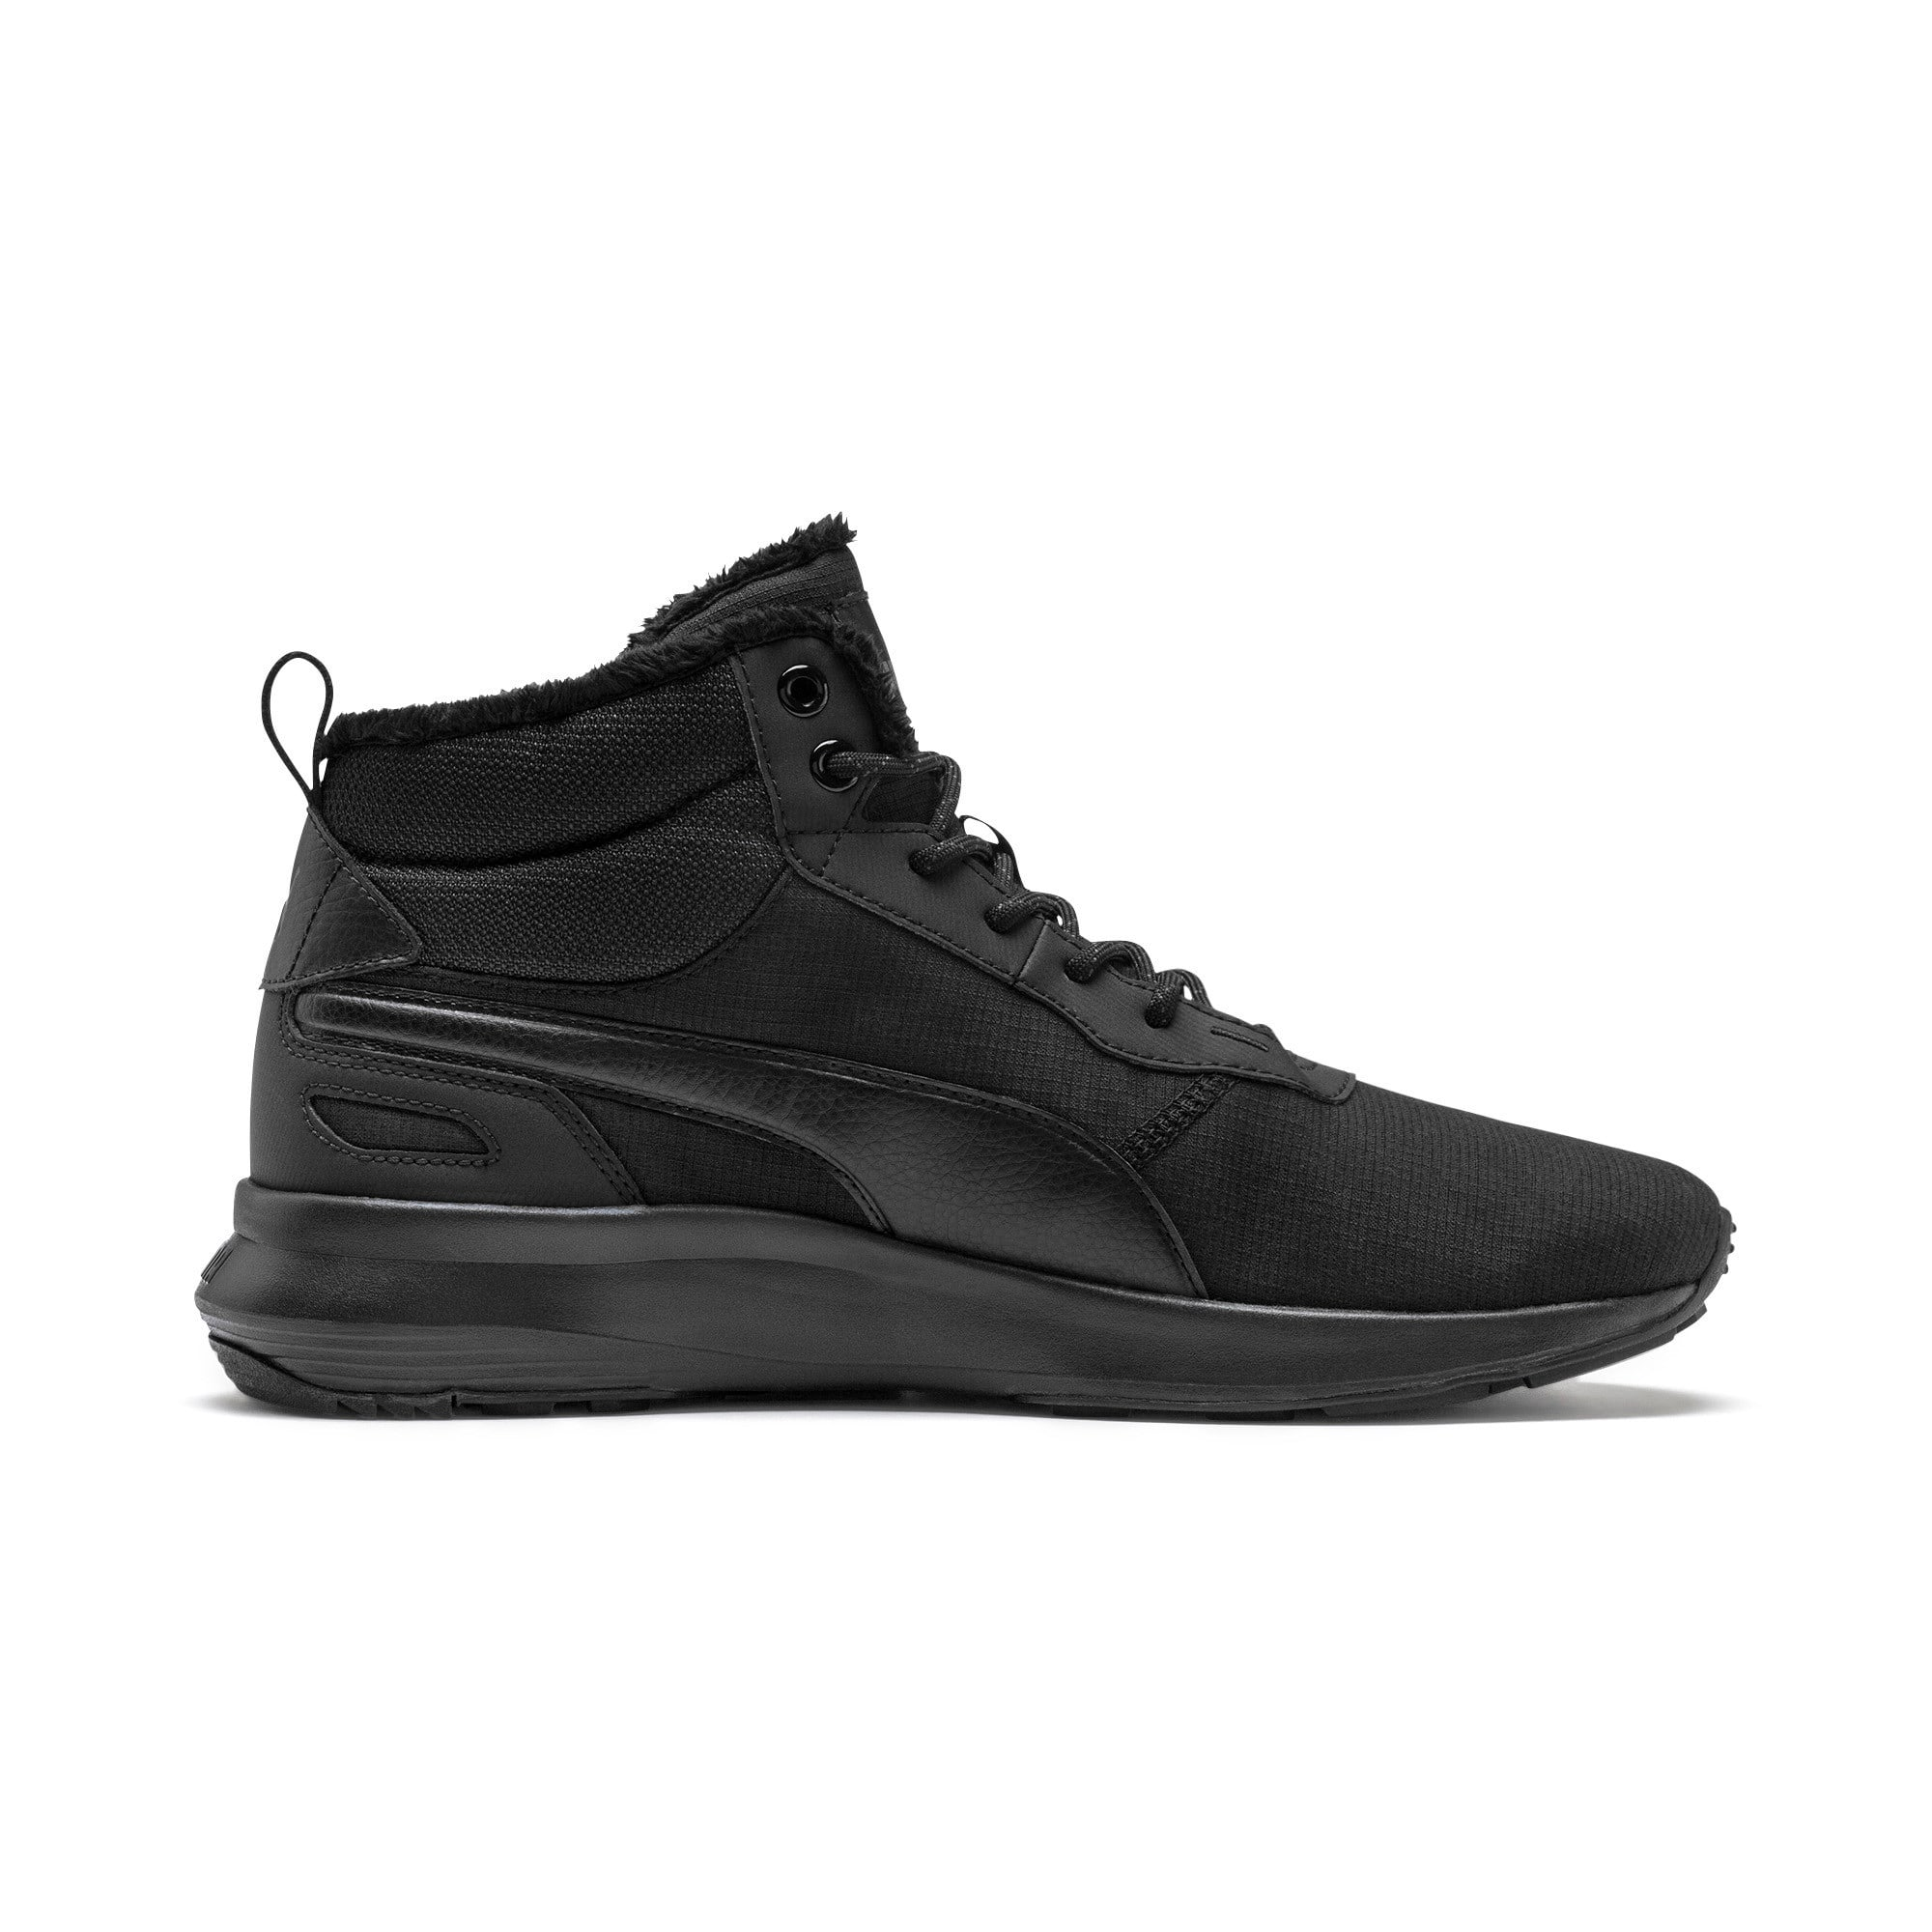 Thumbnail 6 of Activate Mid-Cut Boots, Puma Black-Puma Black, medium